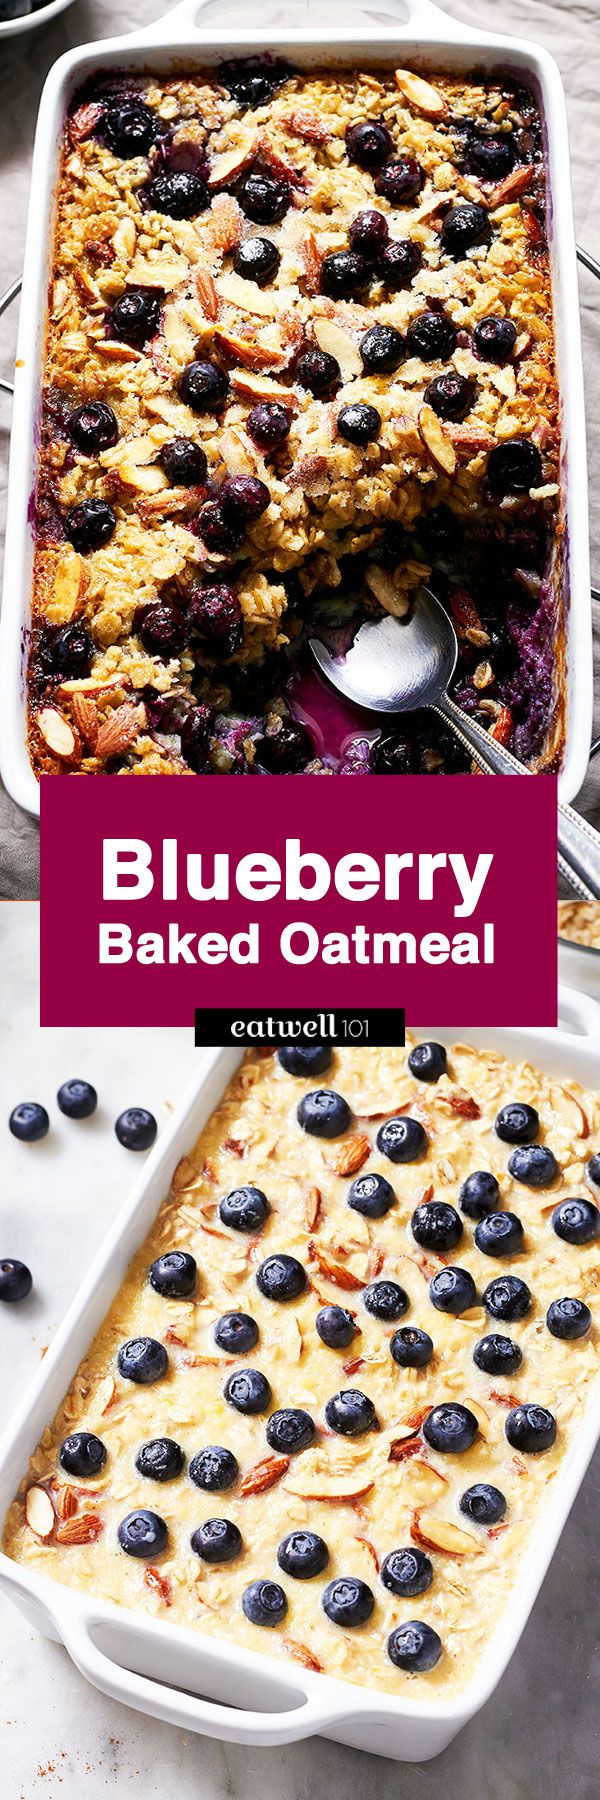 Blueberry Baked Oatmeal - Sweet, crunchy and juicy, comes together quickly and you can easily make a big pan to feed a crowd.